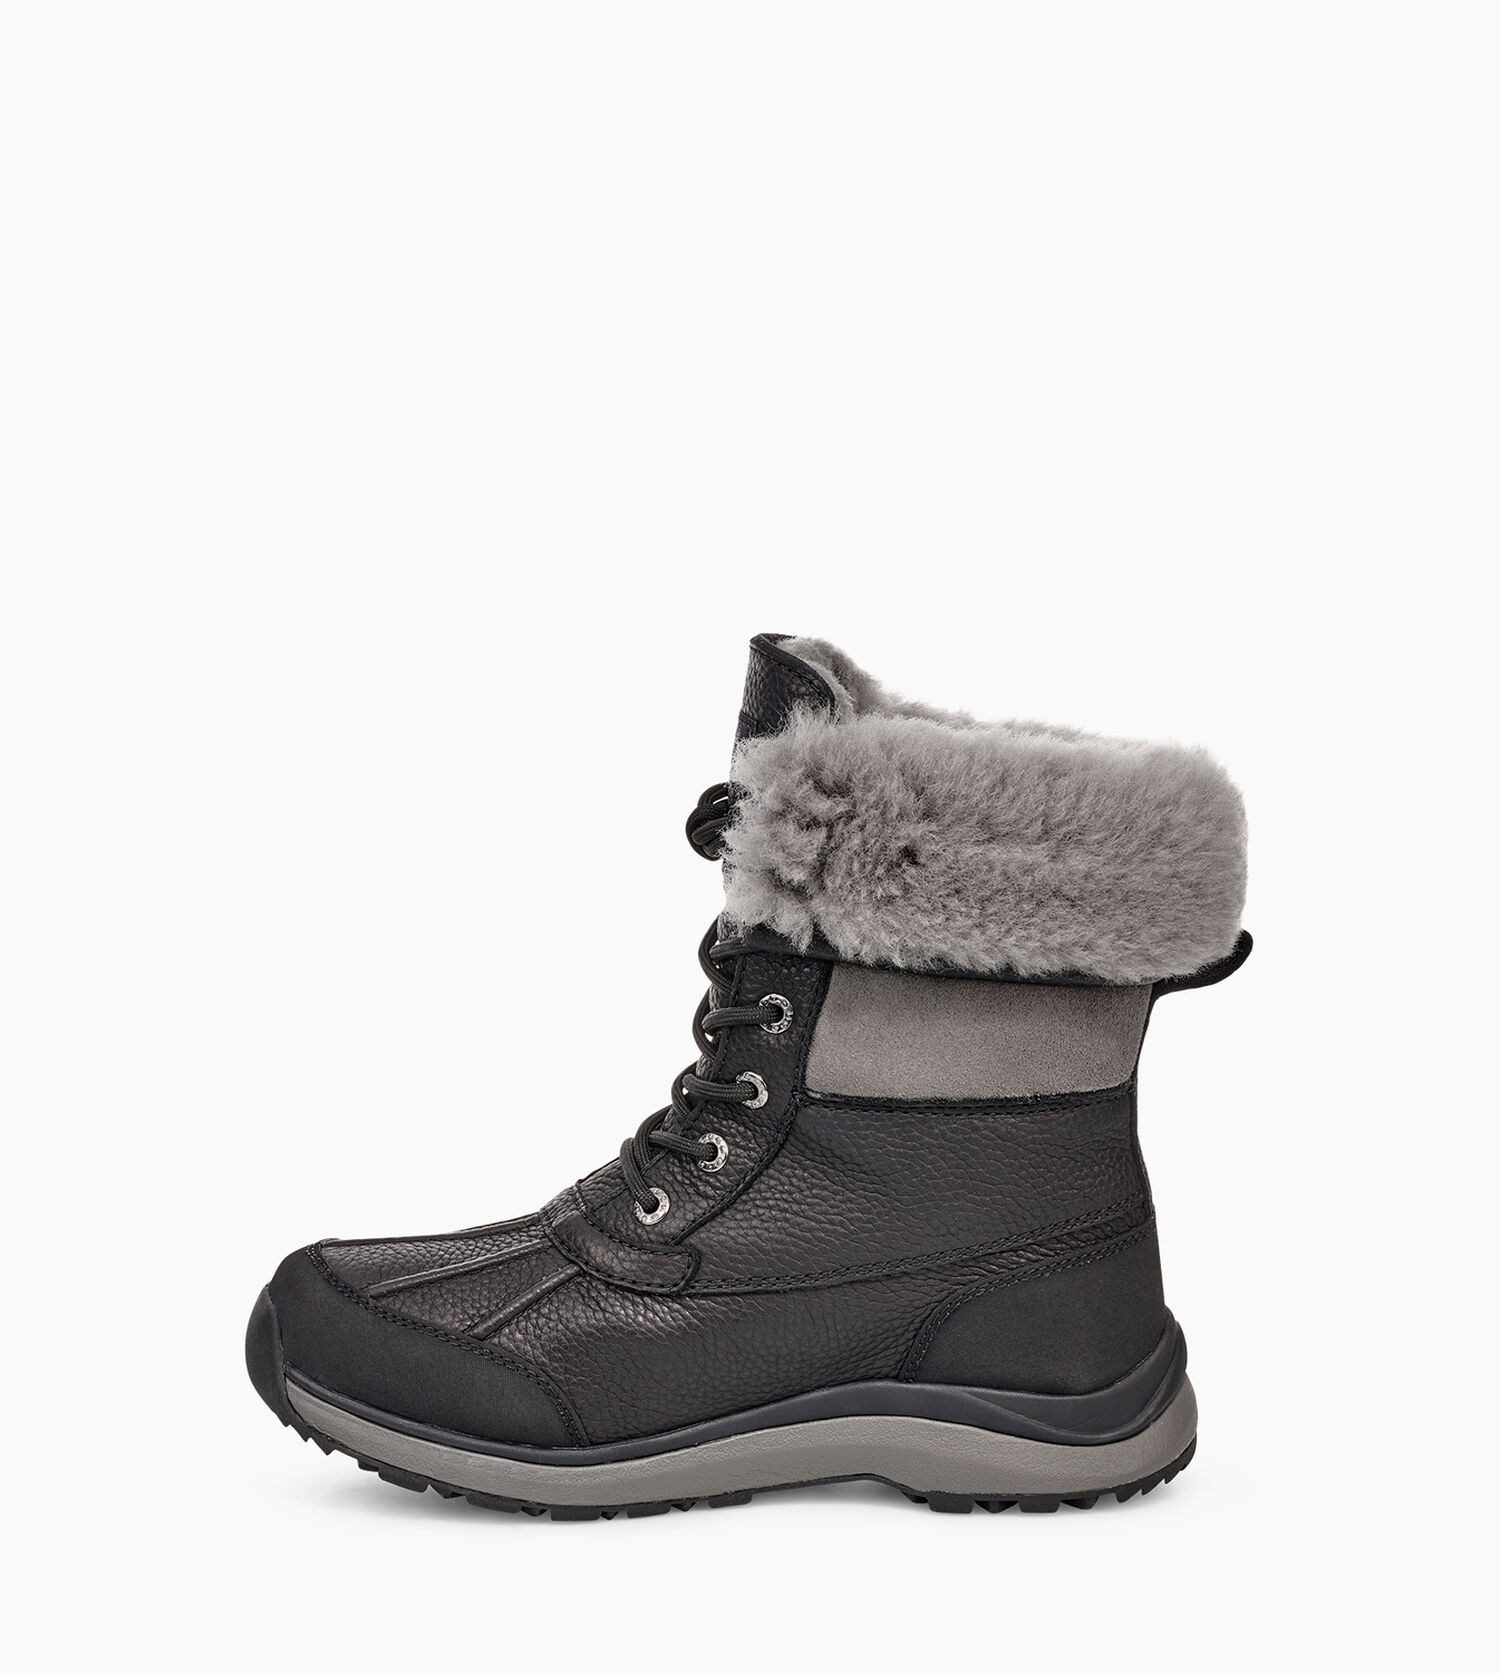 dc29d6f22a8 Women's Share this product Adirondack III Boot